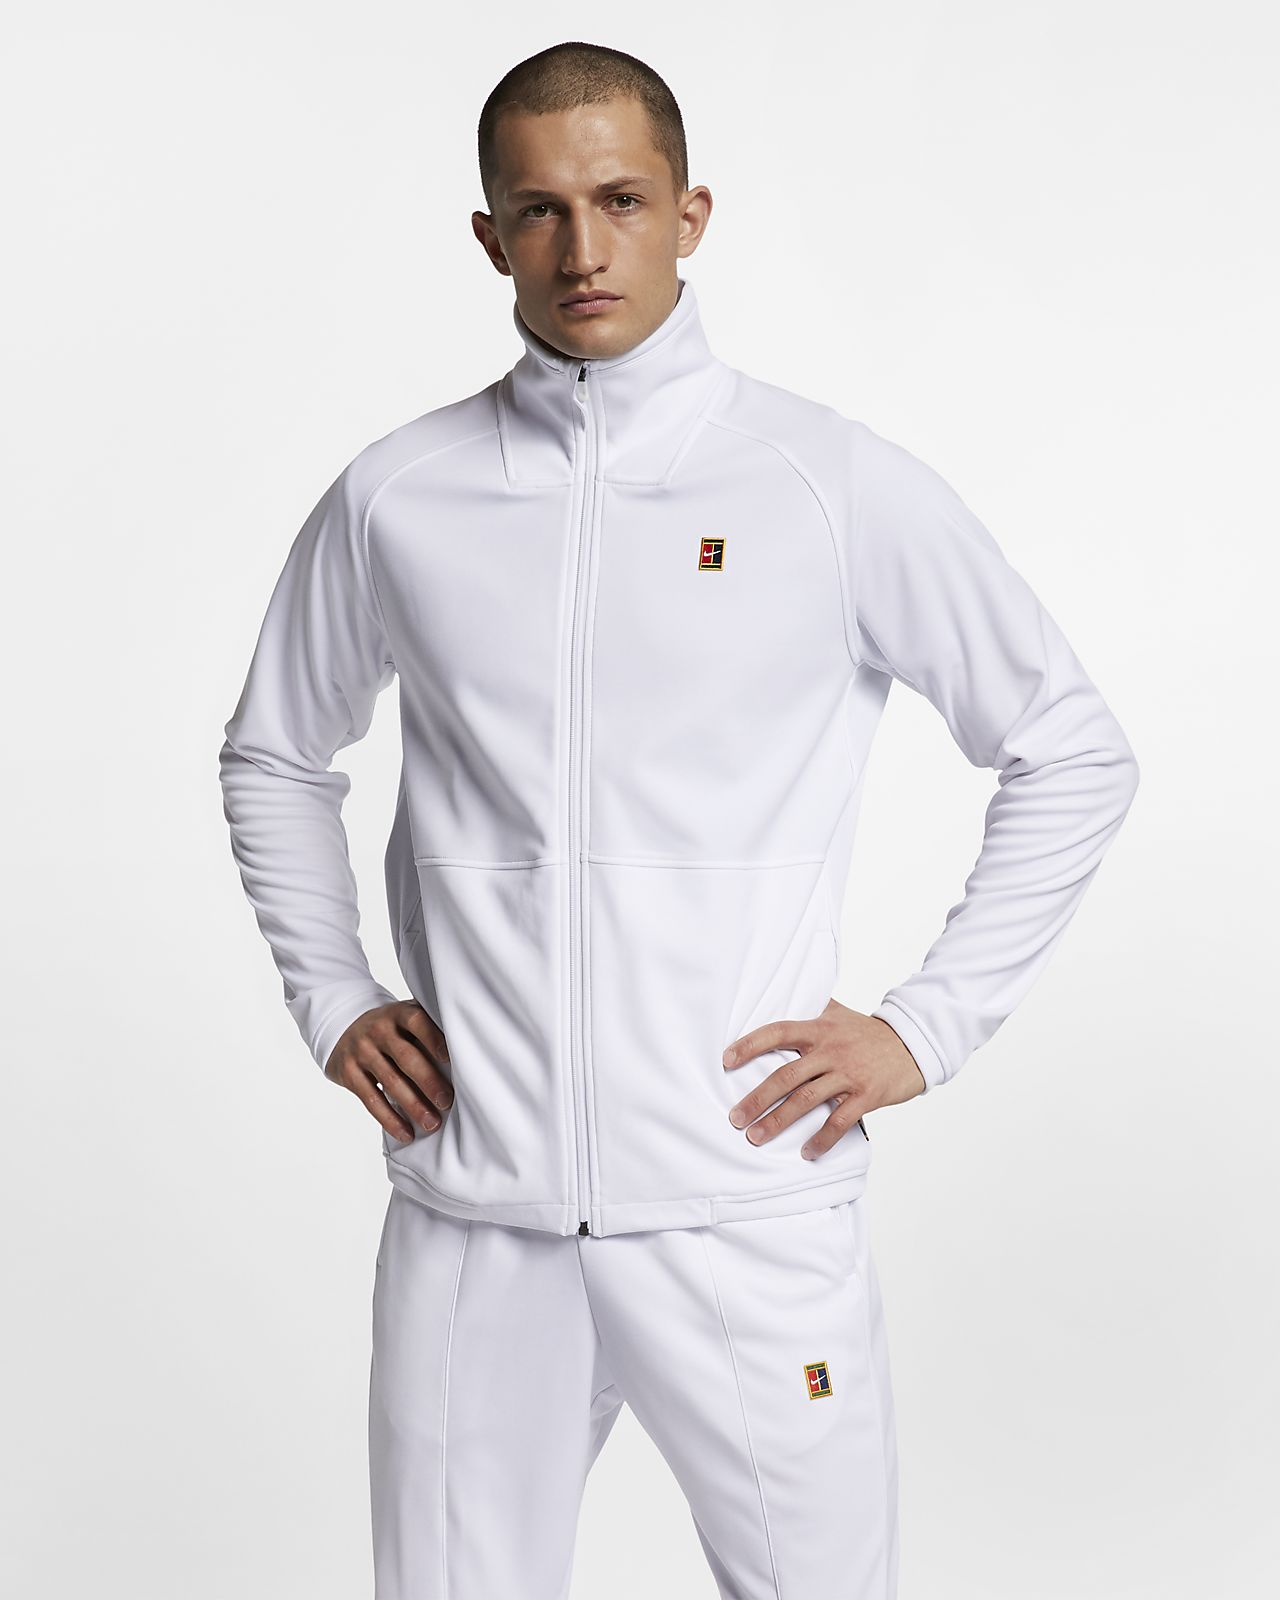 3dabdcca284c NikeCourt Men s Tennis Jacket. Nike.com PT